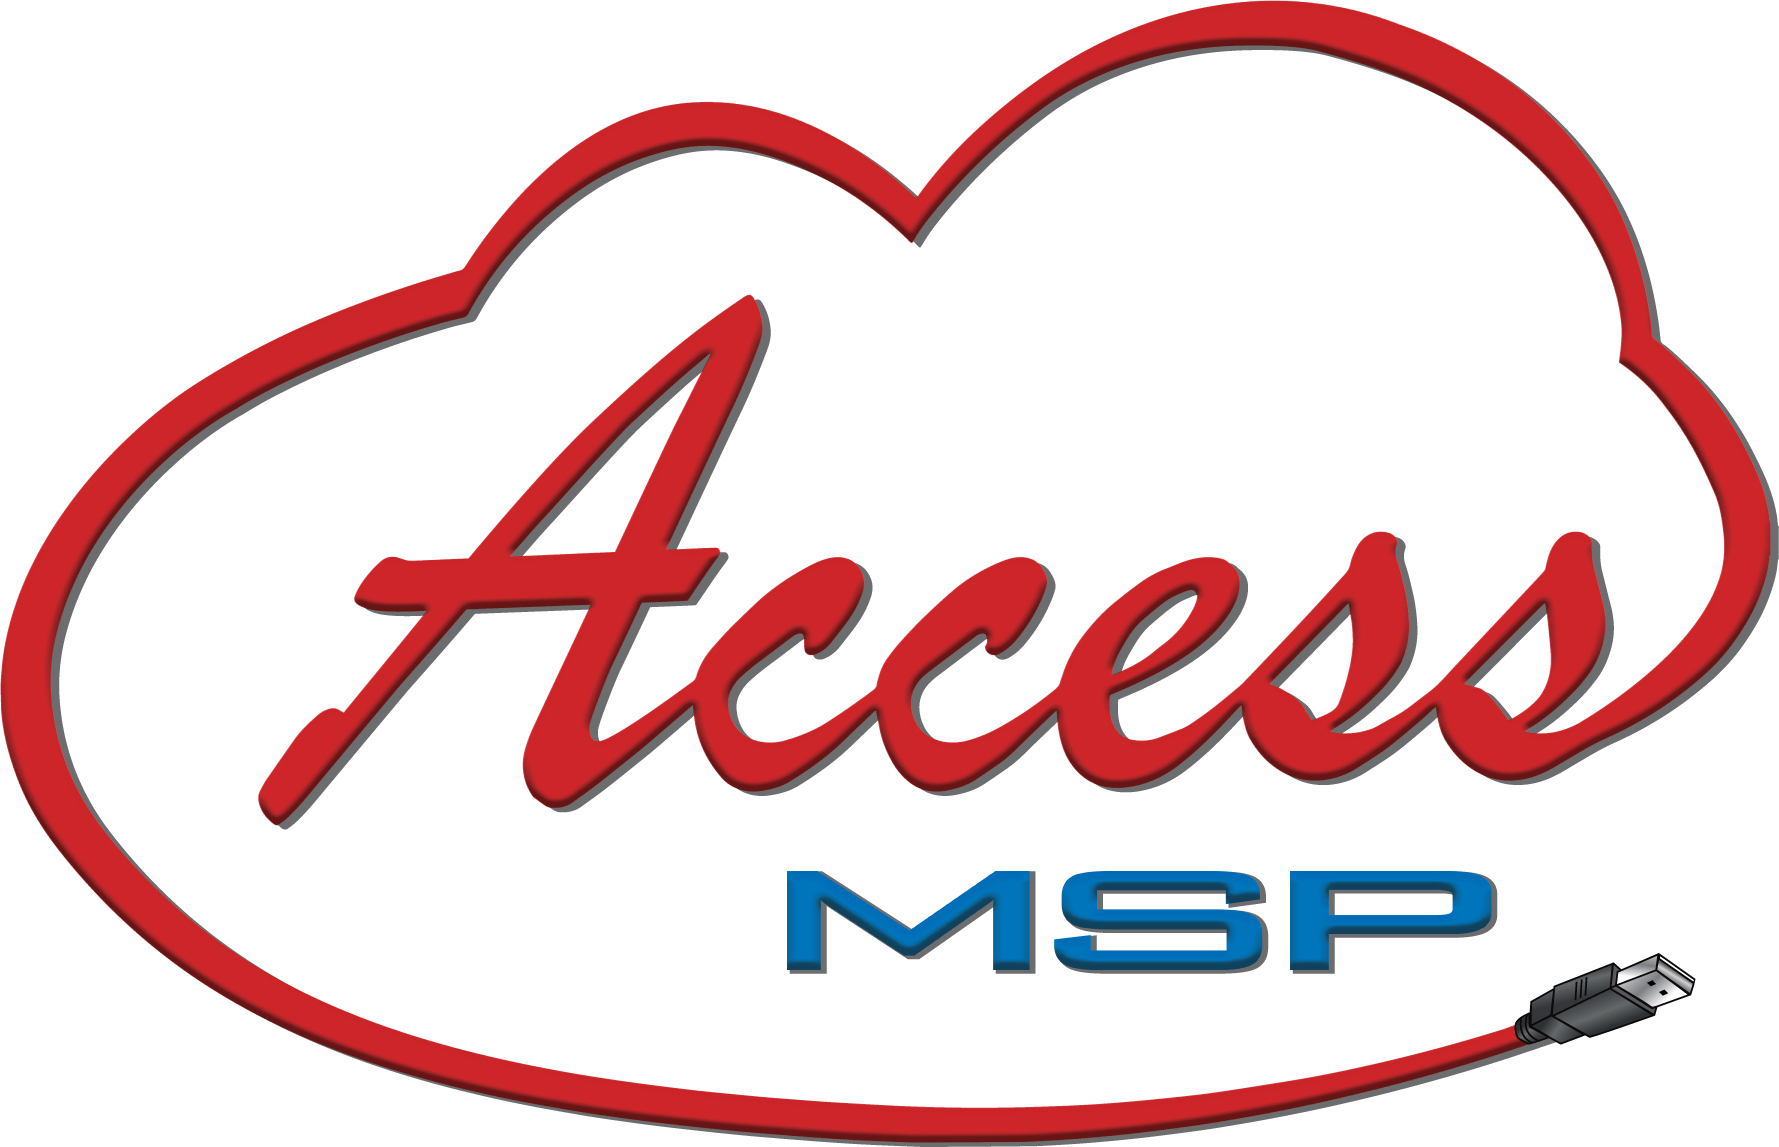 AccessMSP.com - Managed IT, Cloud & Web Services